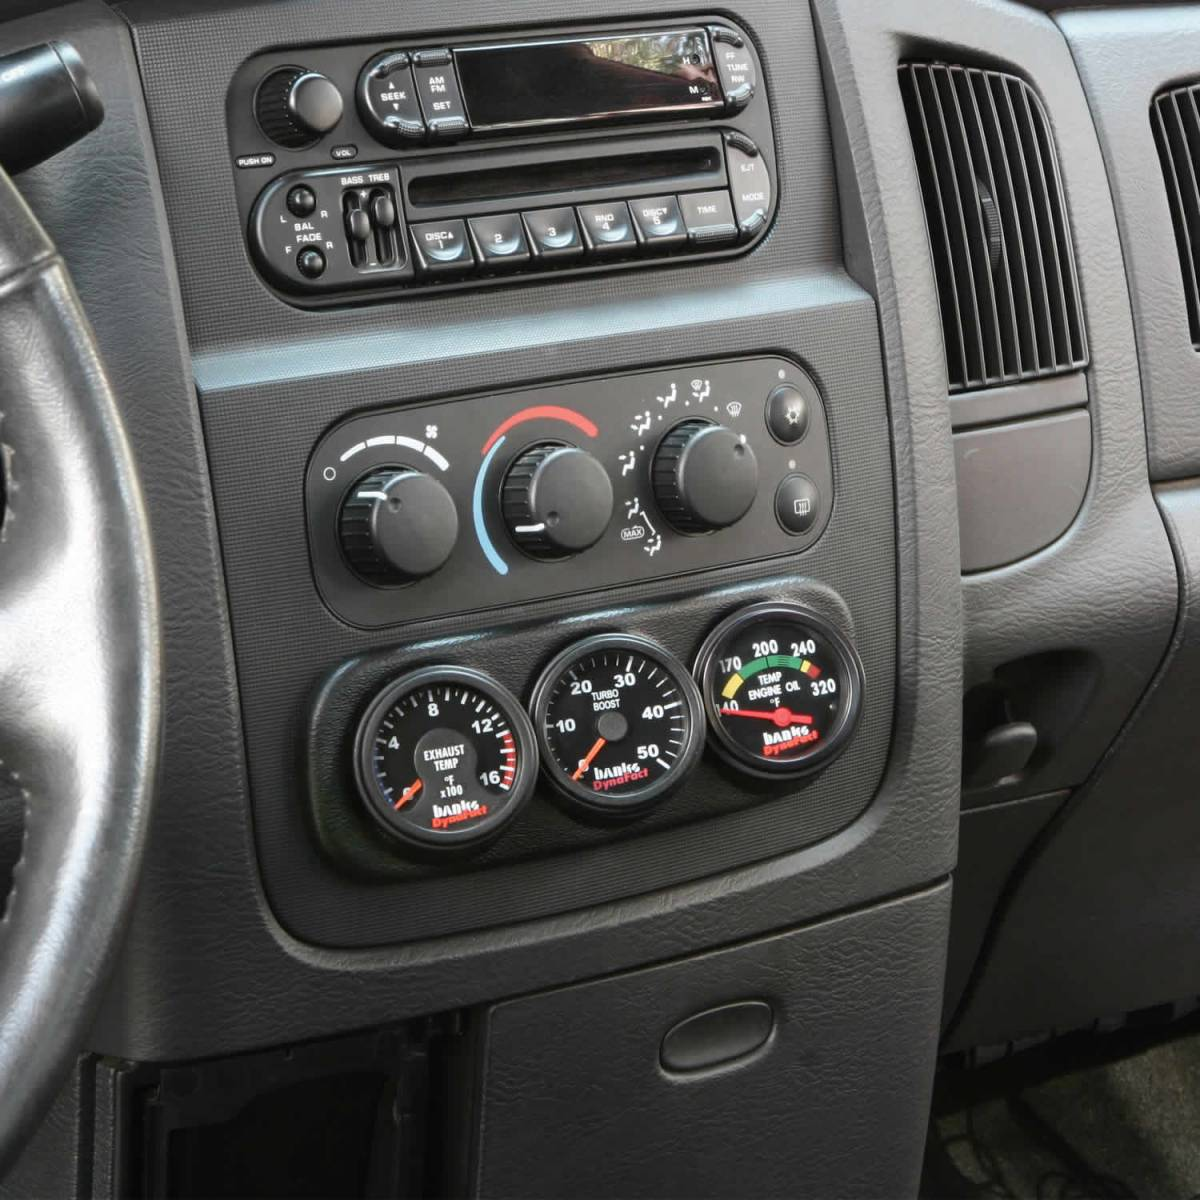 Banks Power Dash Mount Gauge Pod 3 Gauge 2003-2005 Dodge ...